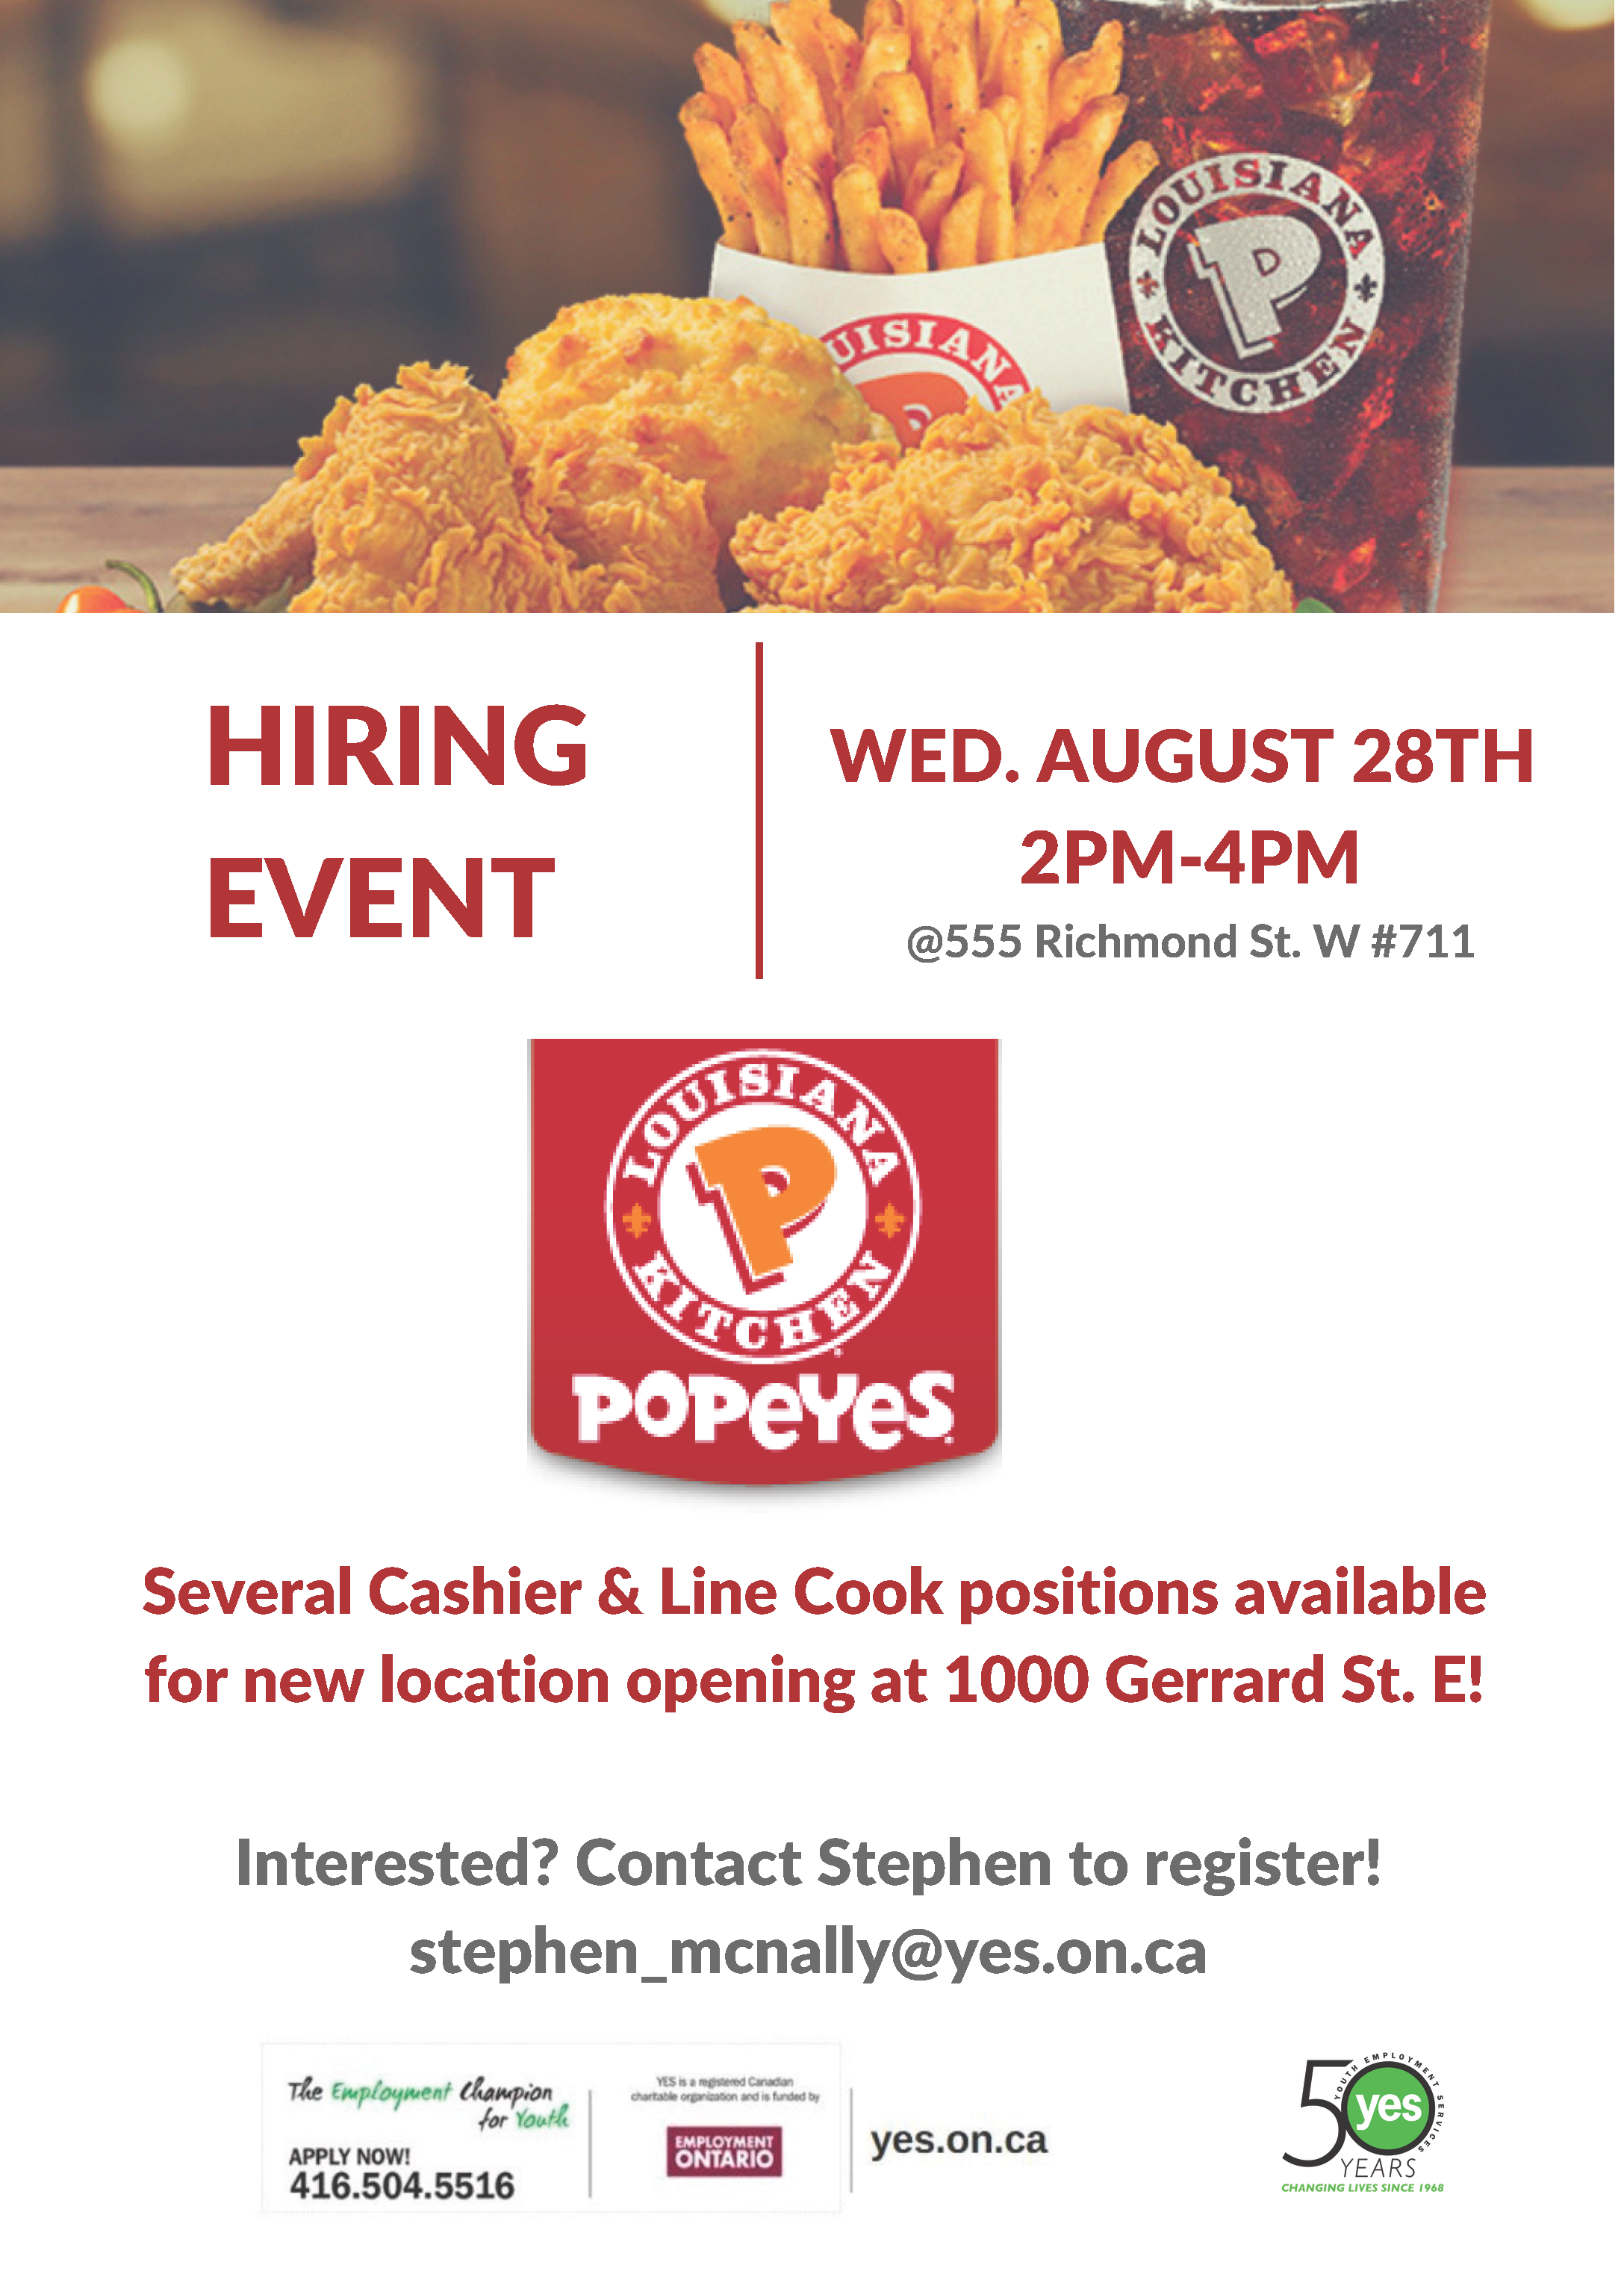 Popeyes Hiring Event @ YES Head Office